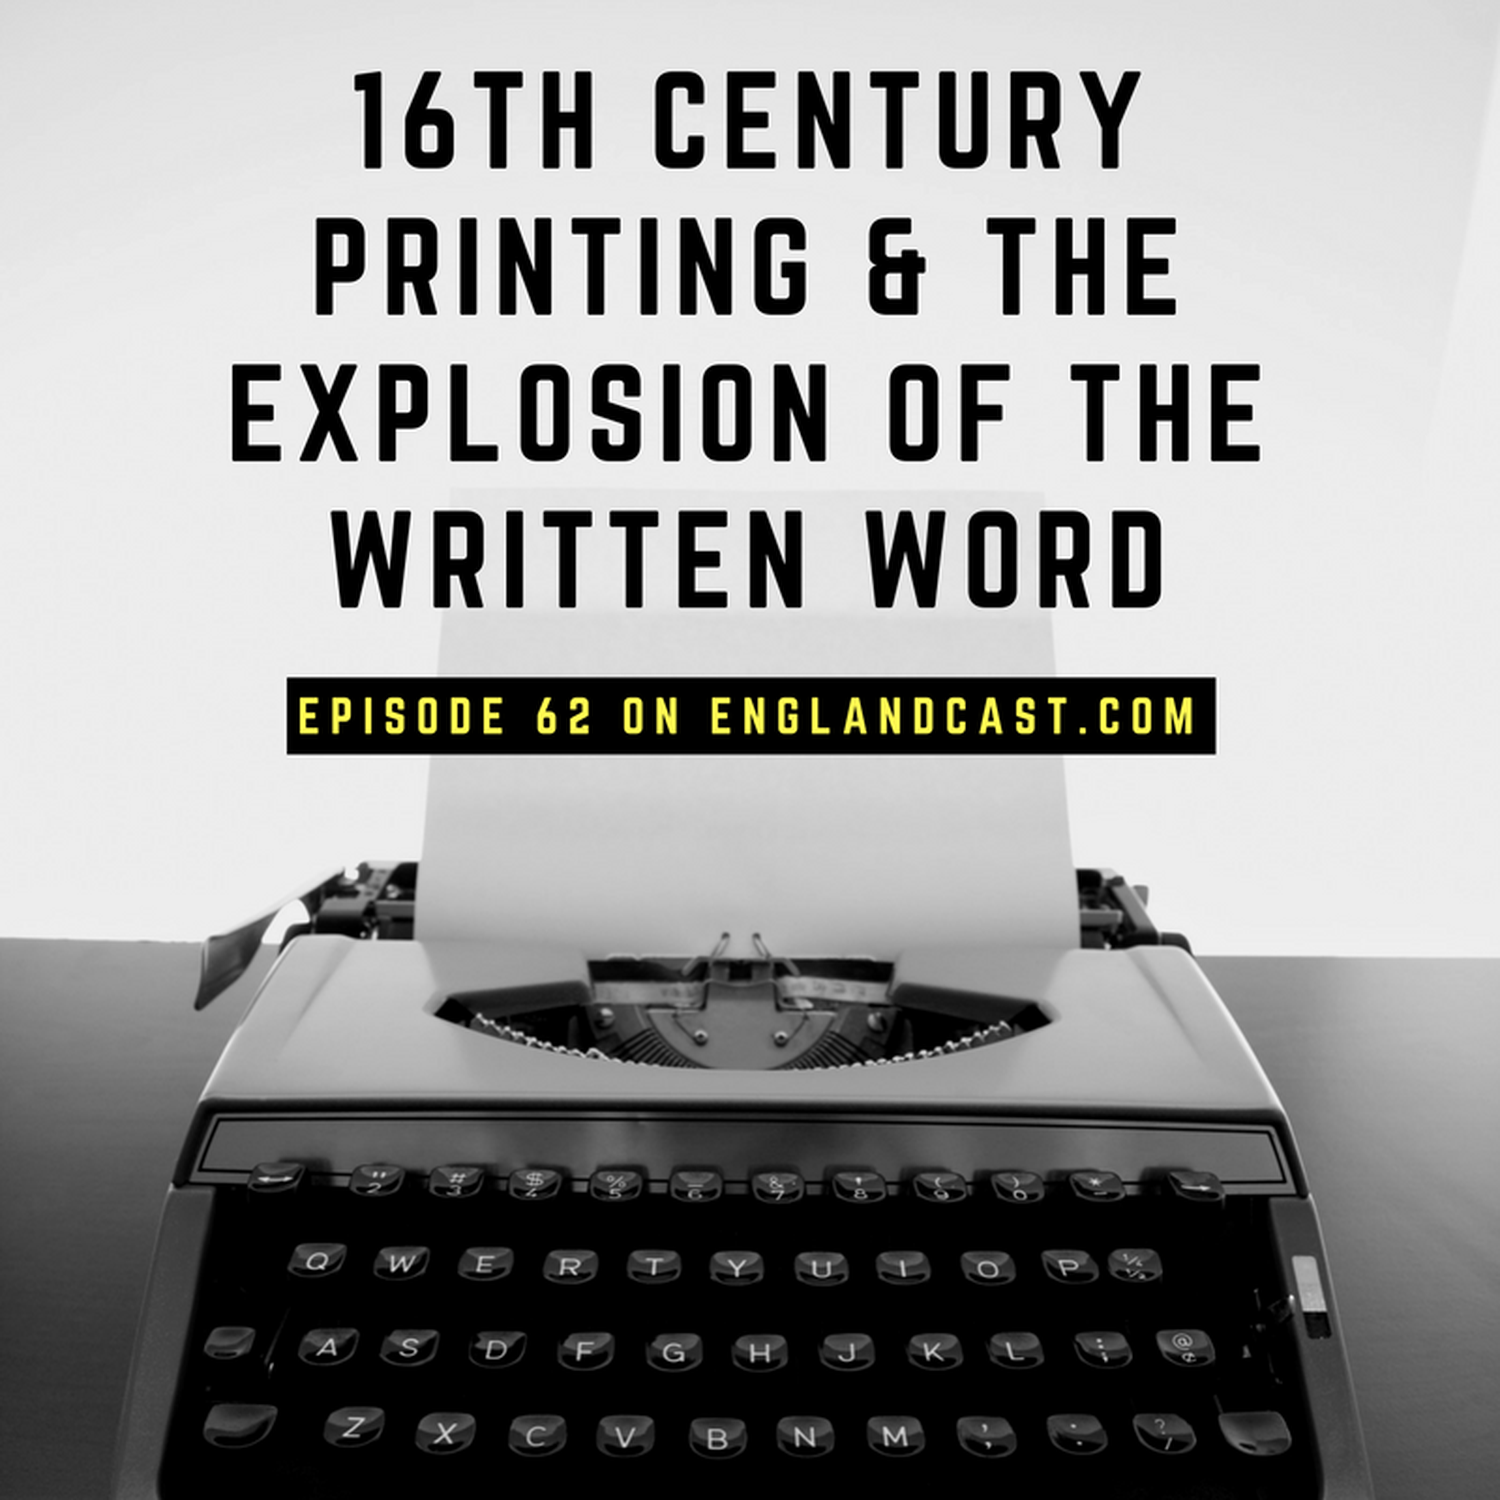 Episode 062: Literature and Printing in 16th century England